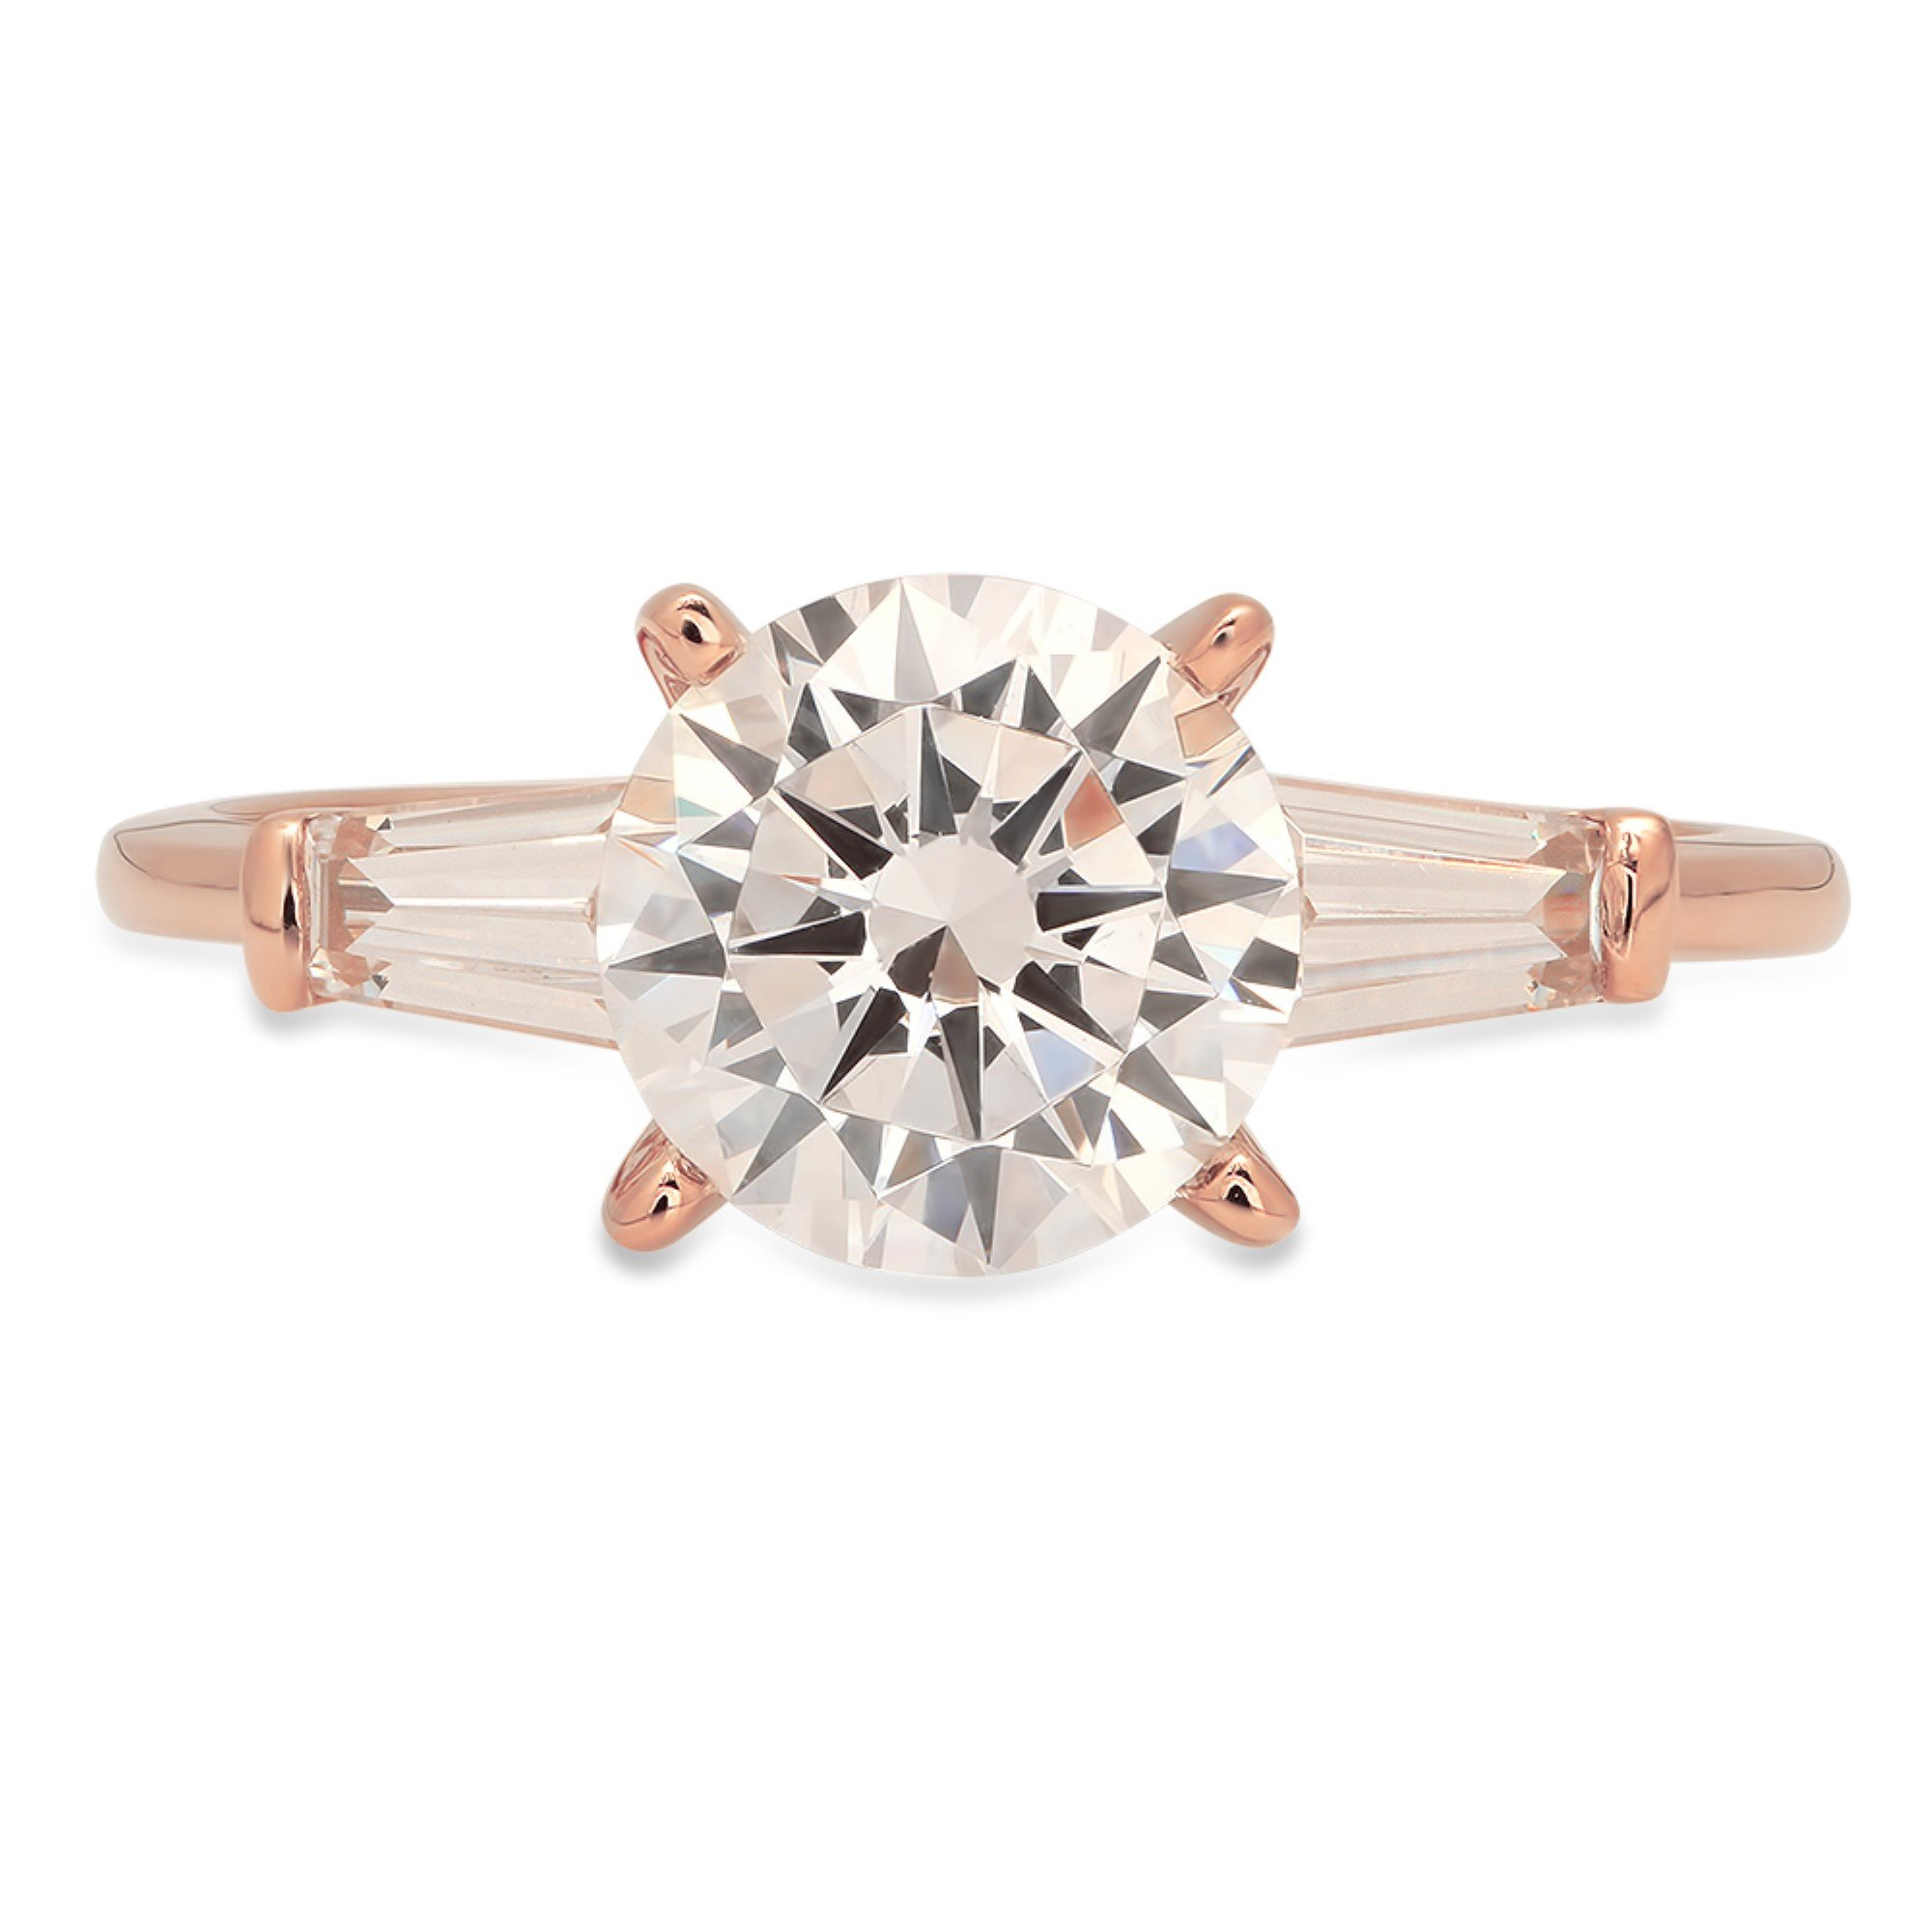 Brilliant Round Baguette Cut Solitaire 3 Stone Statement Engagement Wedding Anniversary Promise Bridal Ring Solid 14K Rose Gold for Women 1.8ct, 10.75